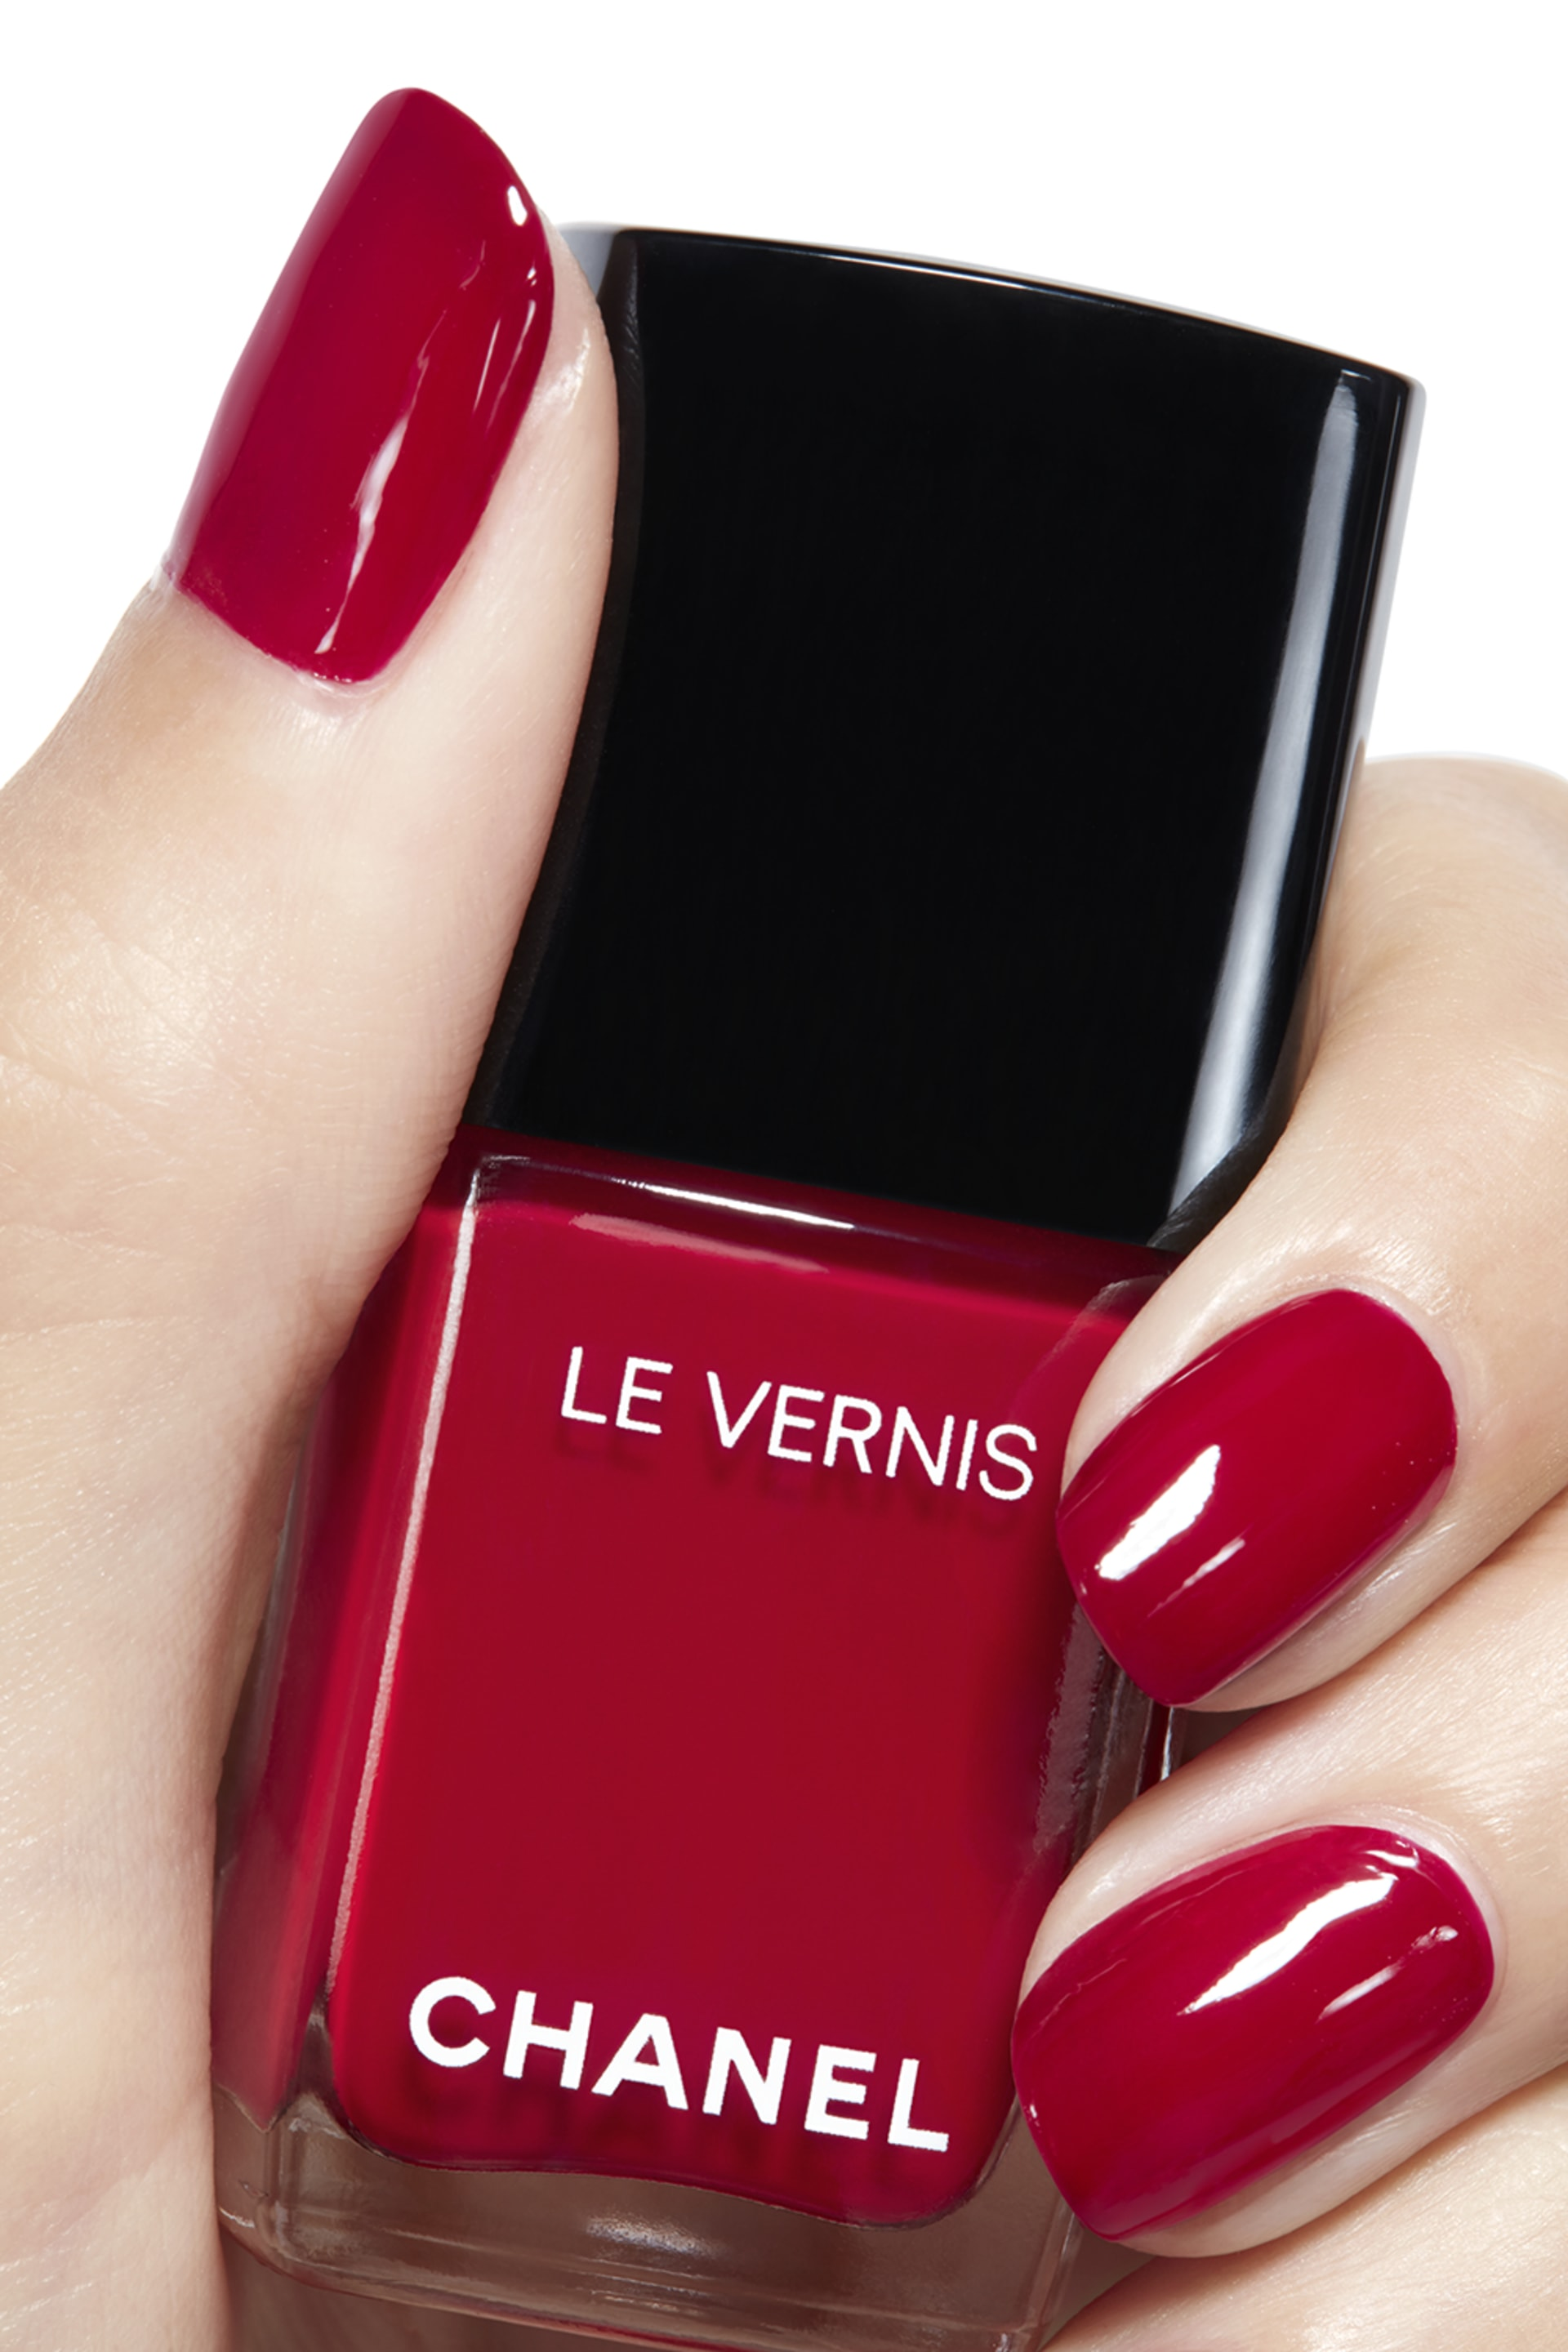 Visuel d'application maquillage 2 - LE VERNIS 528 - ROUGE PUISSANT